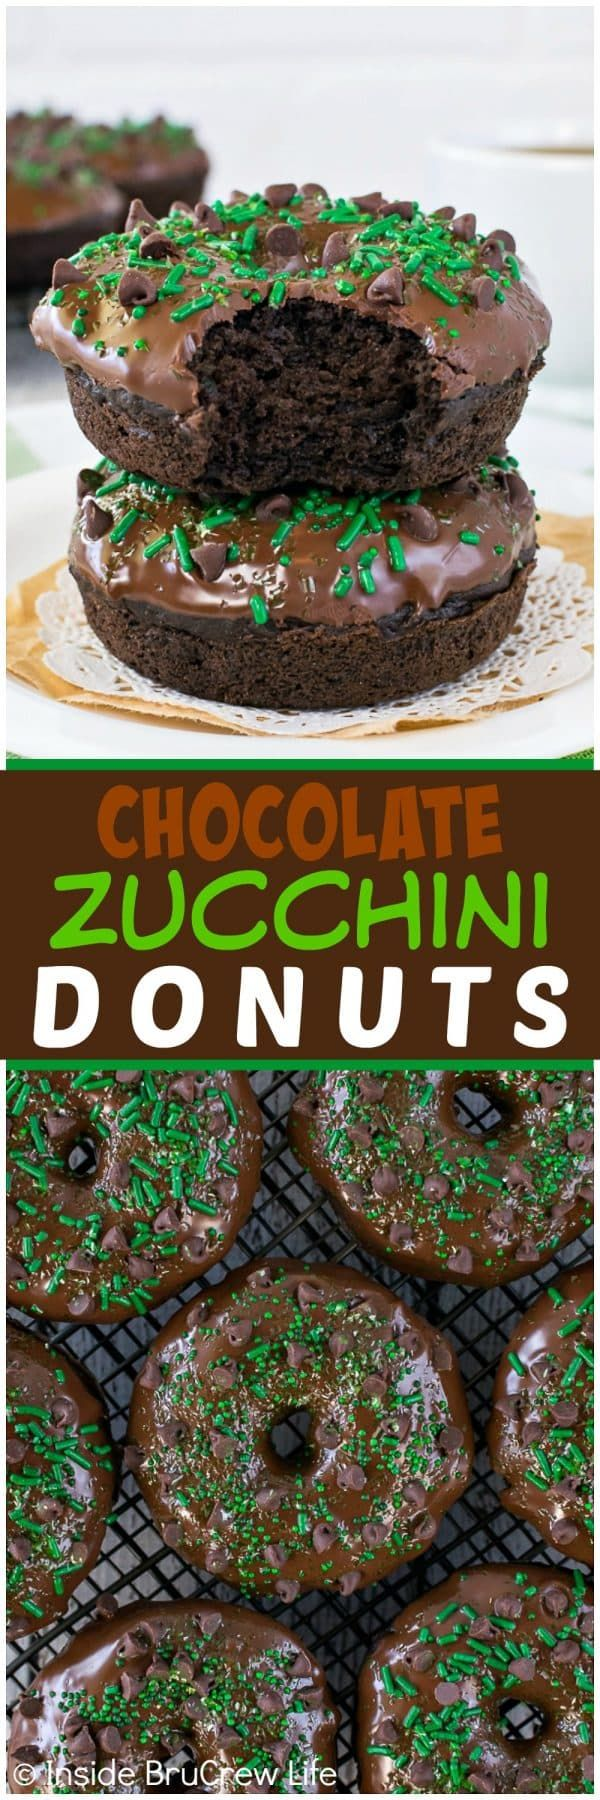 Chocolate Zucchini Donuts - these easy baked donuts are loaded with three kinds of chocolate! Great breakfast recipe to use up those summer veggies!